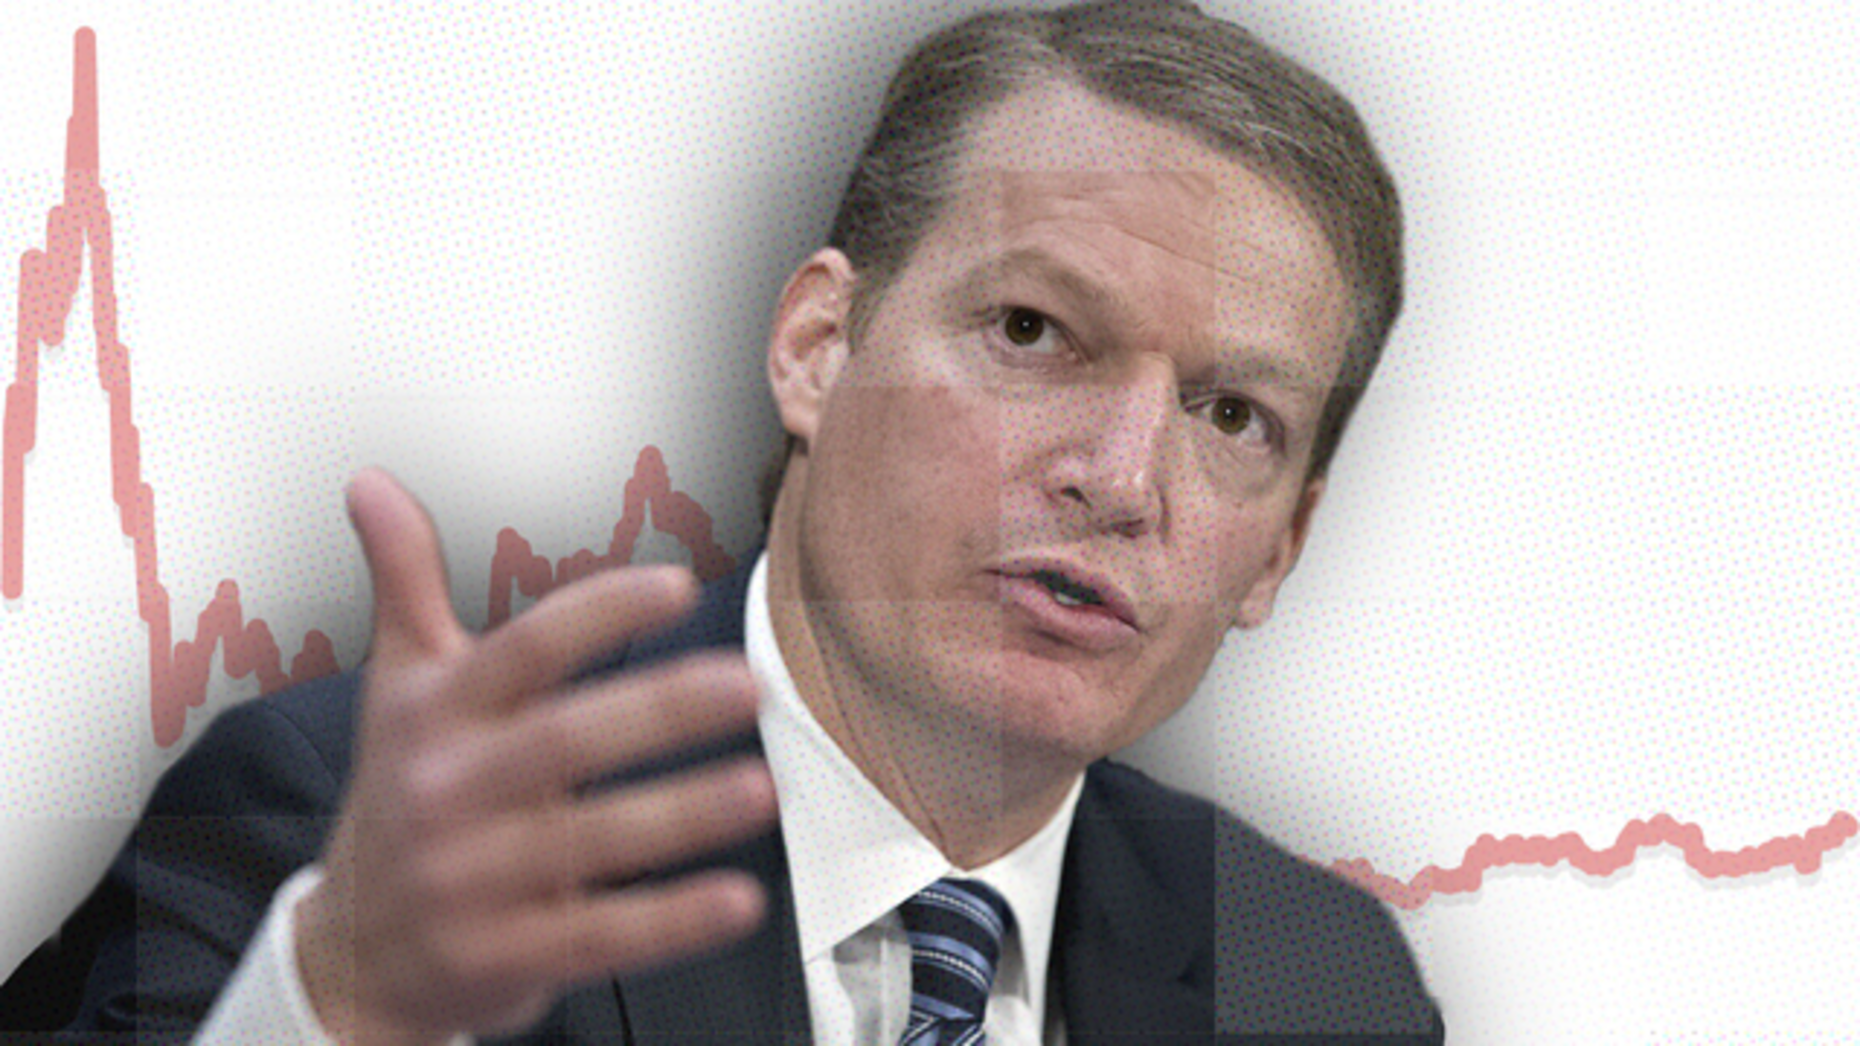 FireEye CEO Kevin Mandia, against FireEye's stock since January, 2014. Art by Mike Sullivan. Photo by Bloomberg